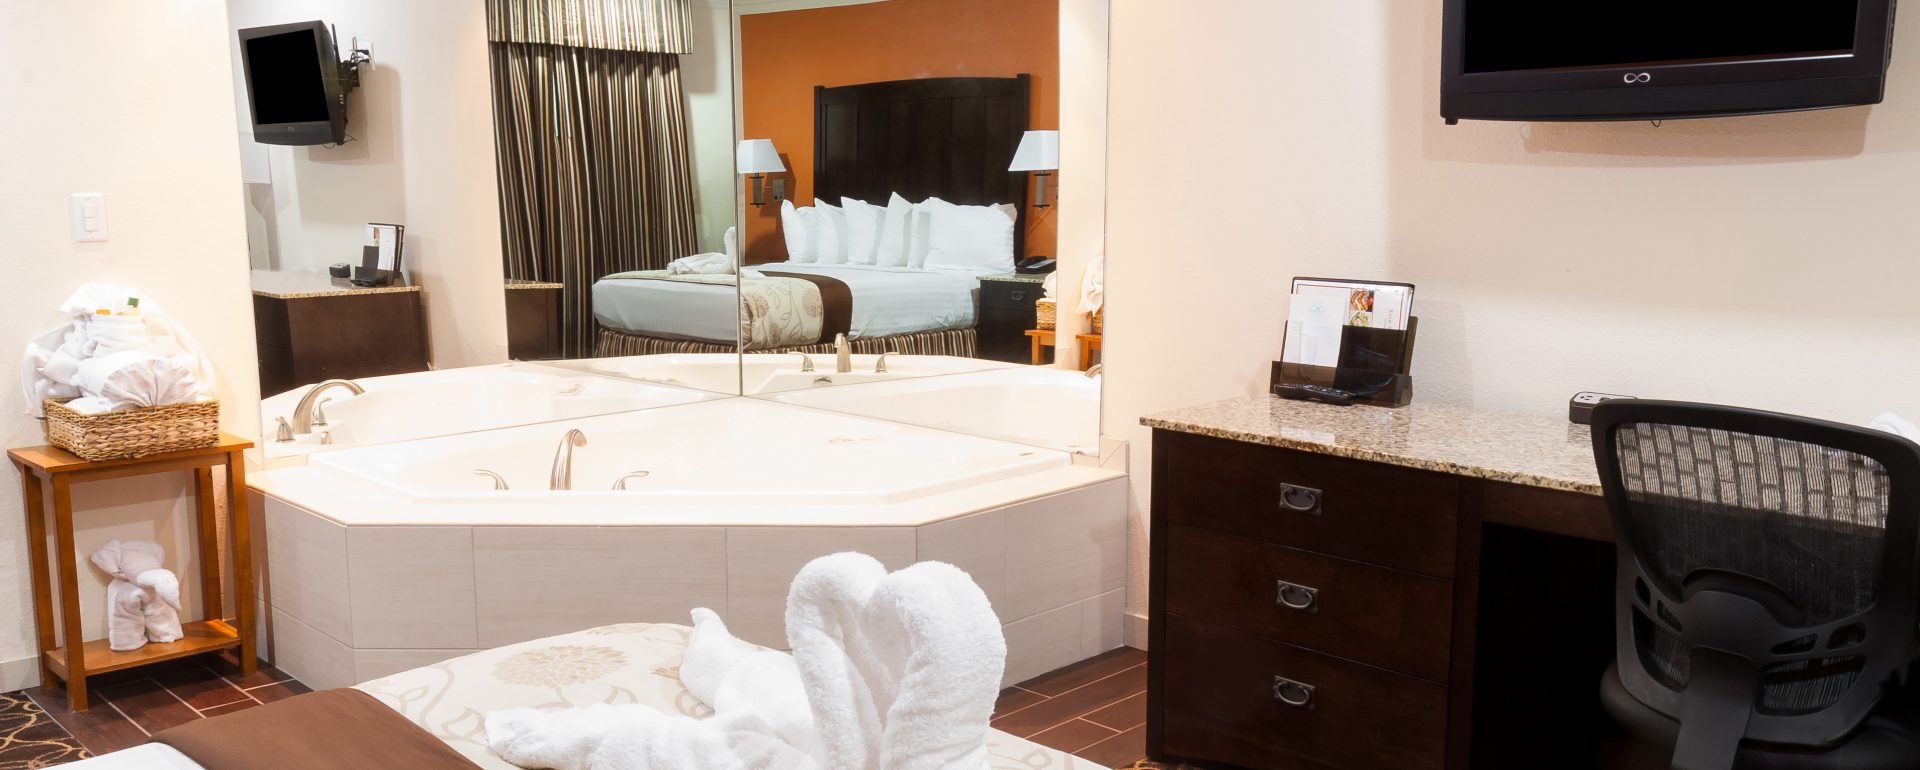 king bed with jacuzzi in room at Park Vue hotel in Anaheim, CA